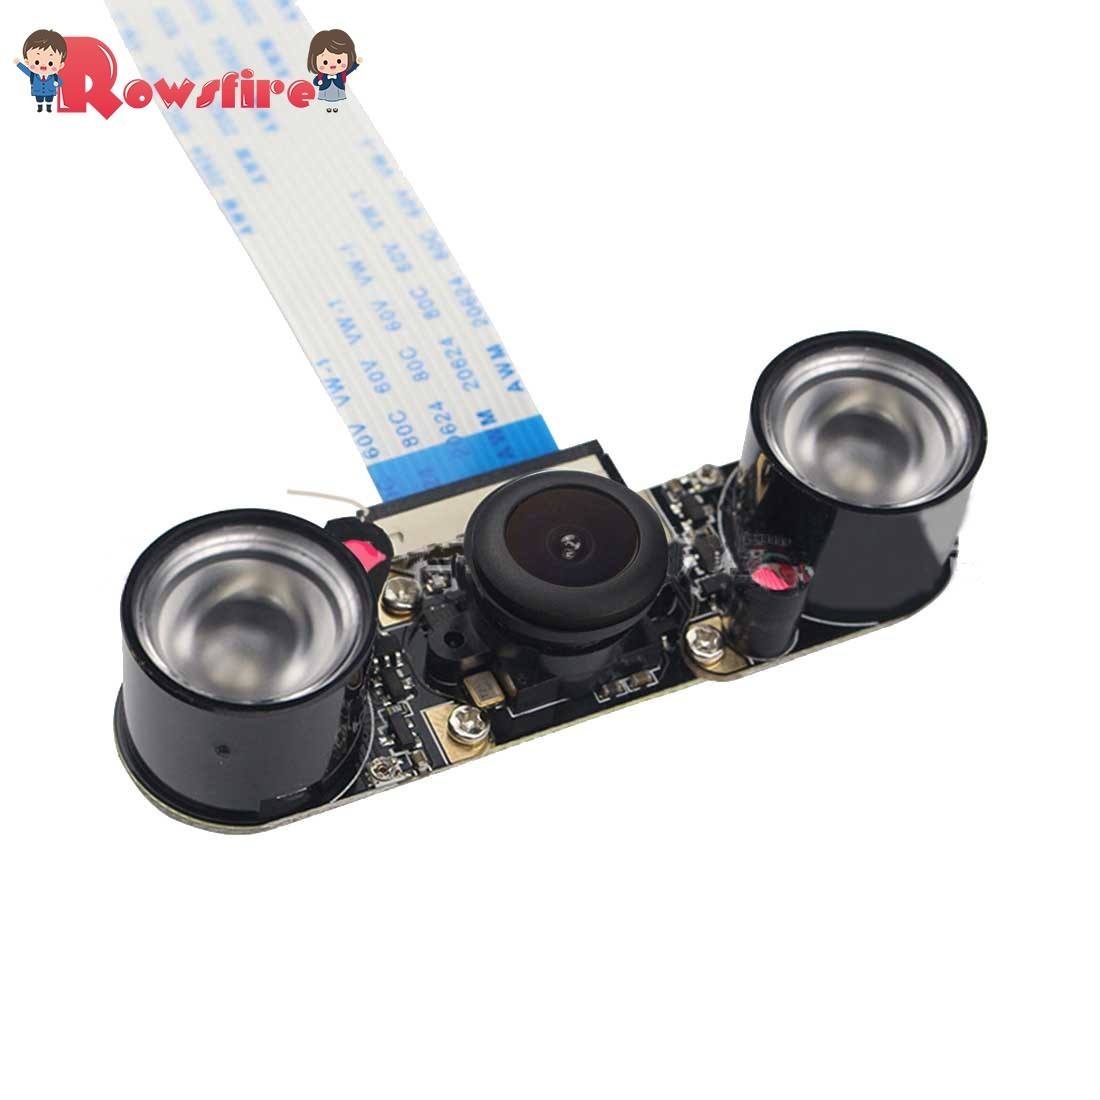 5MP Pixel Fisheye Wide-angle Infrared Night Vision Camera With Infrared Fill Light For Raspberry Pi 3B+/3B/2B